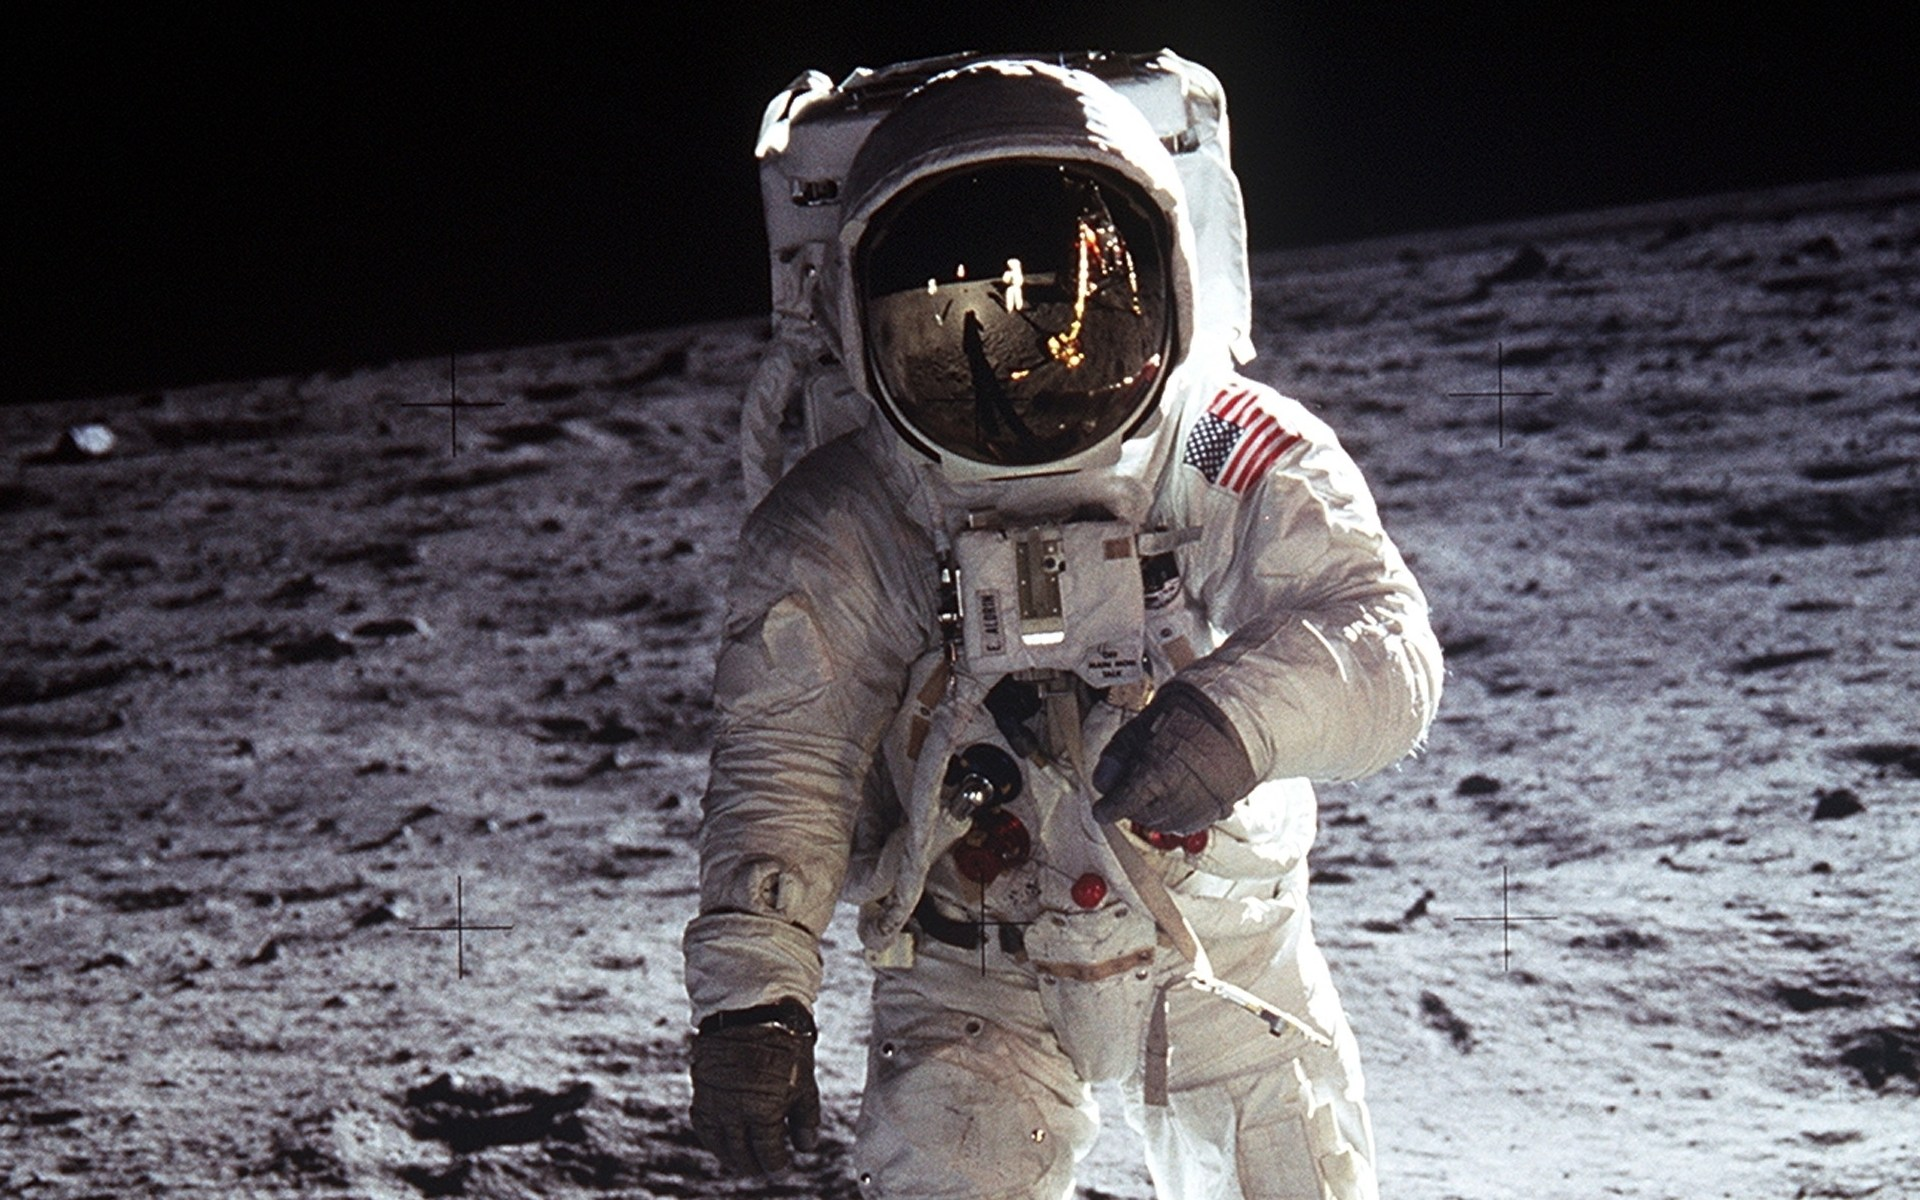 1969 moon landing astronauts - photo #5